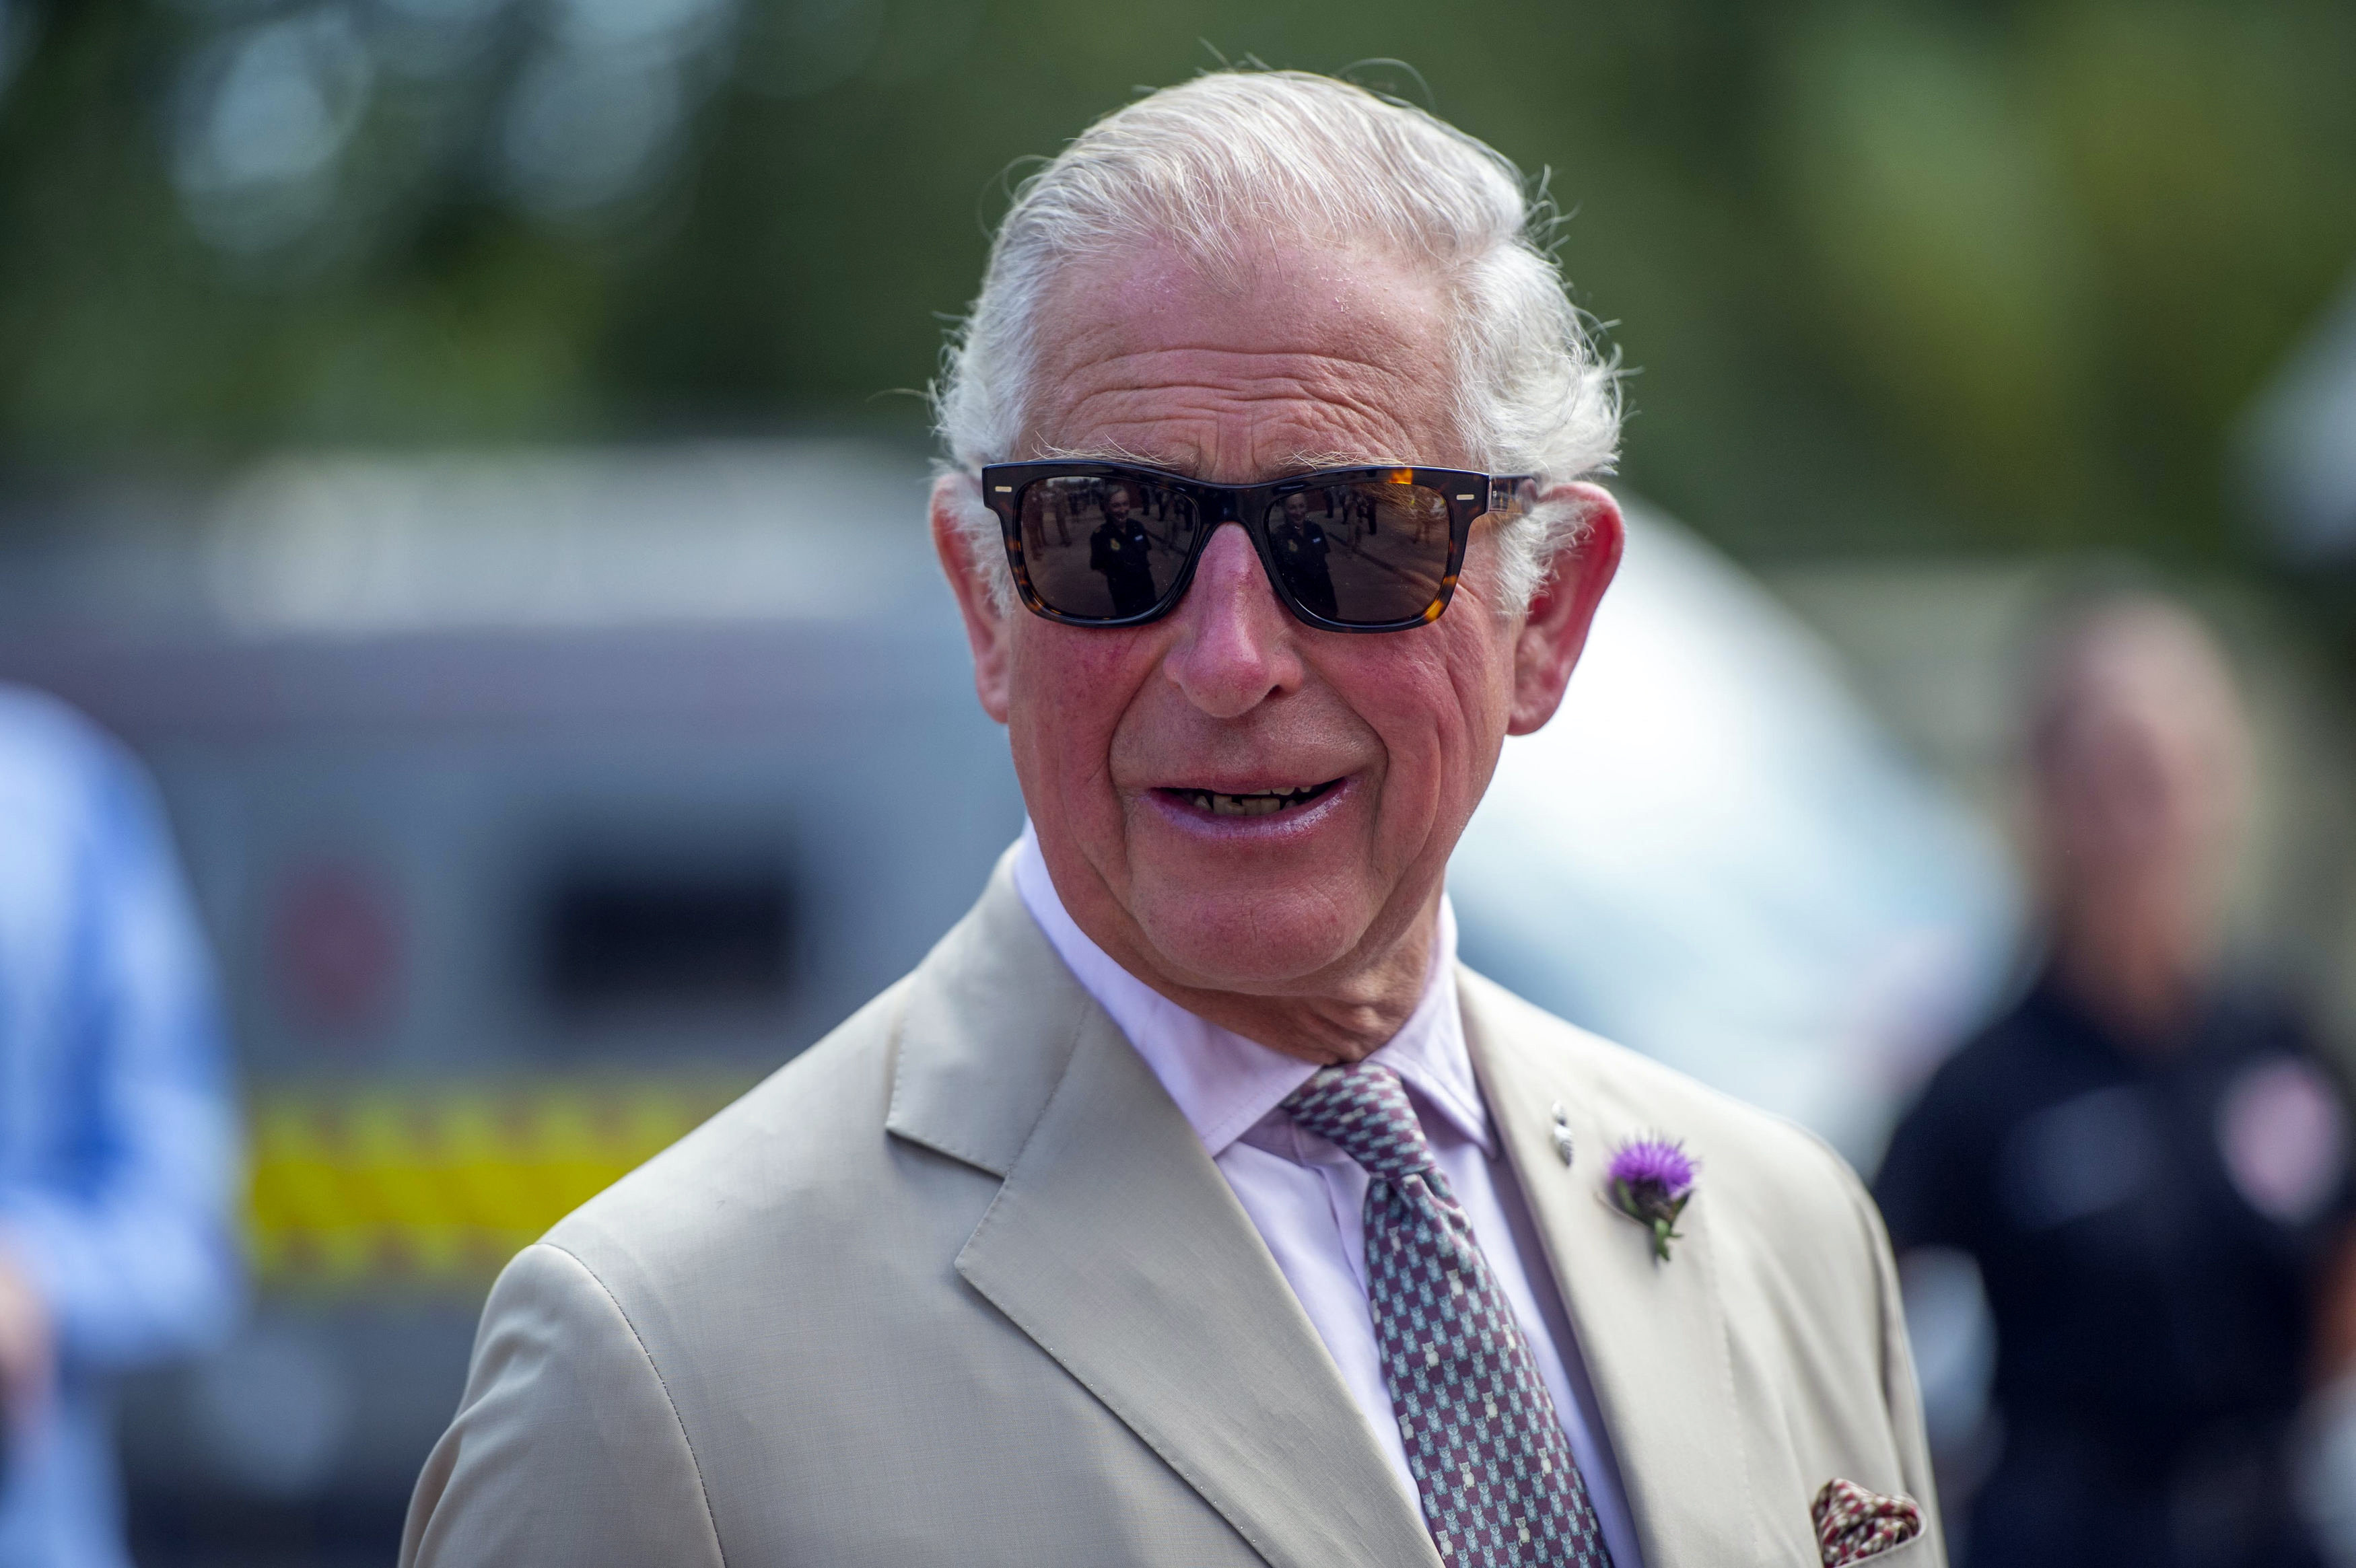 prince charles sad he hasn t seen prince harry and meghan markle s son archie in a year etcanada com seen prince harry and meghan